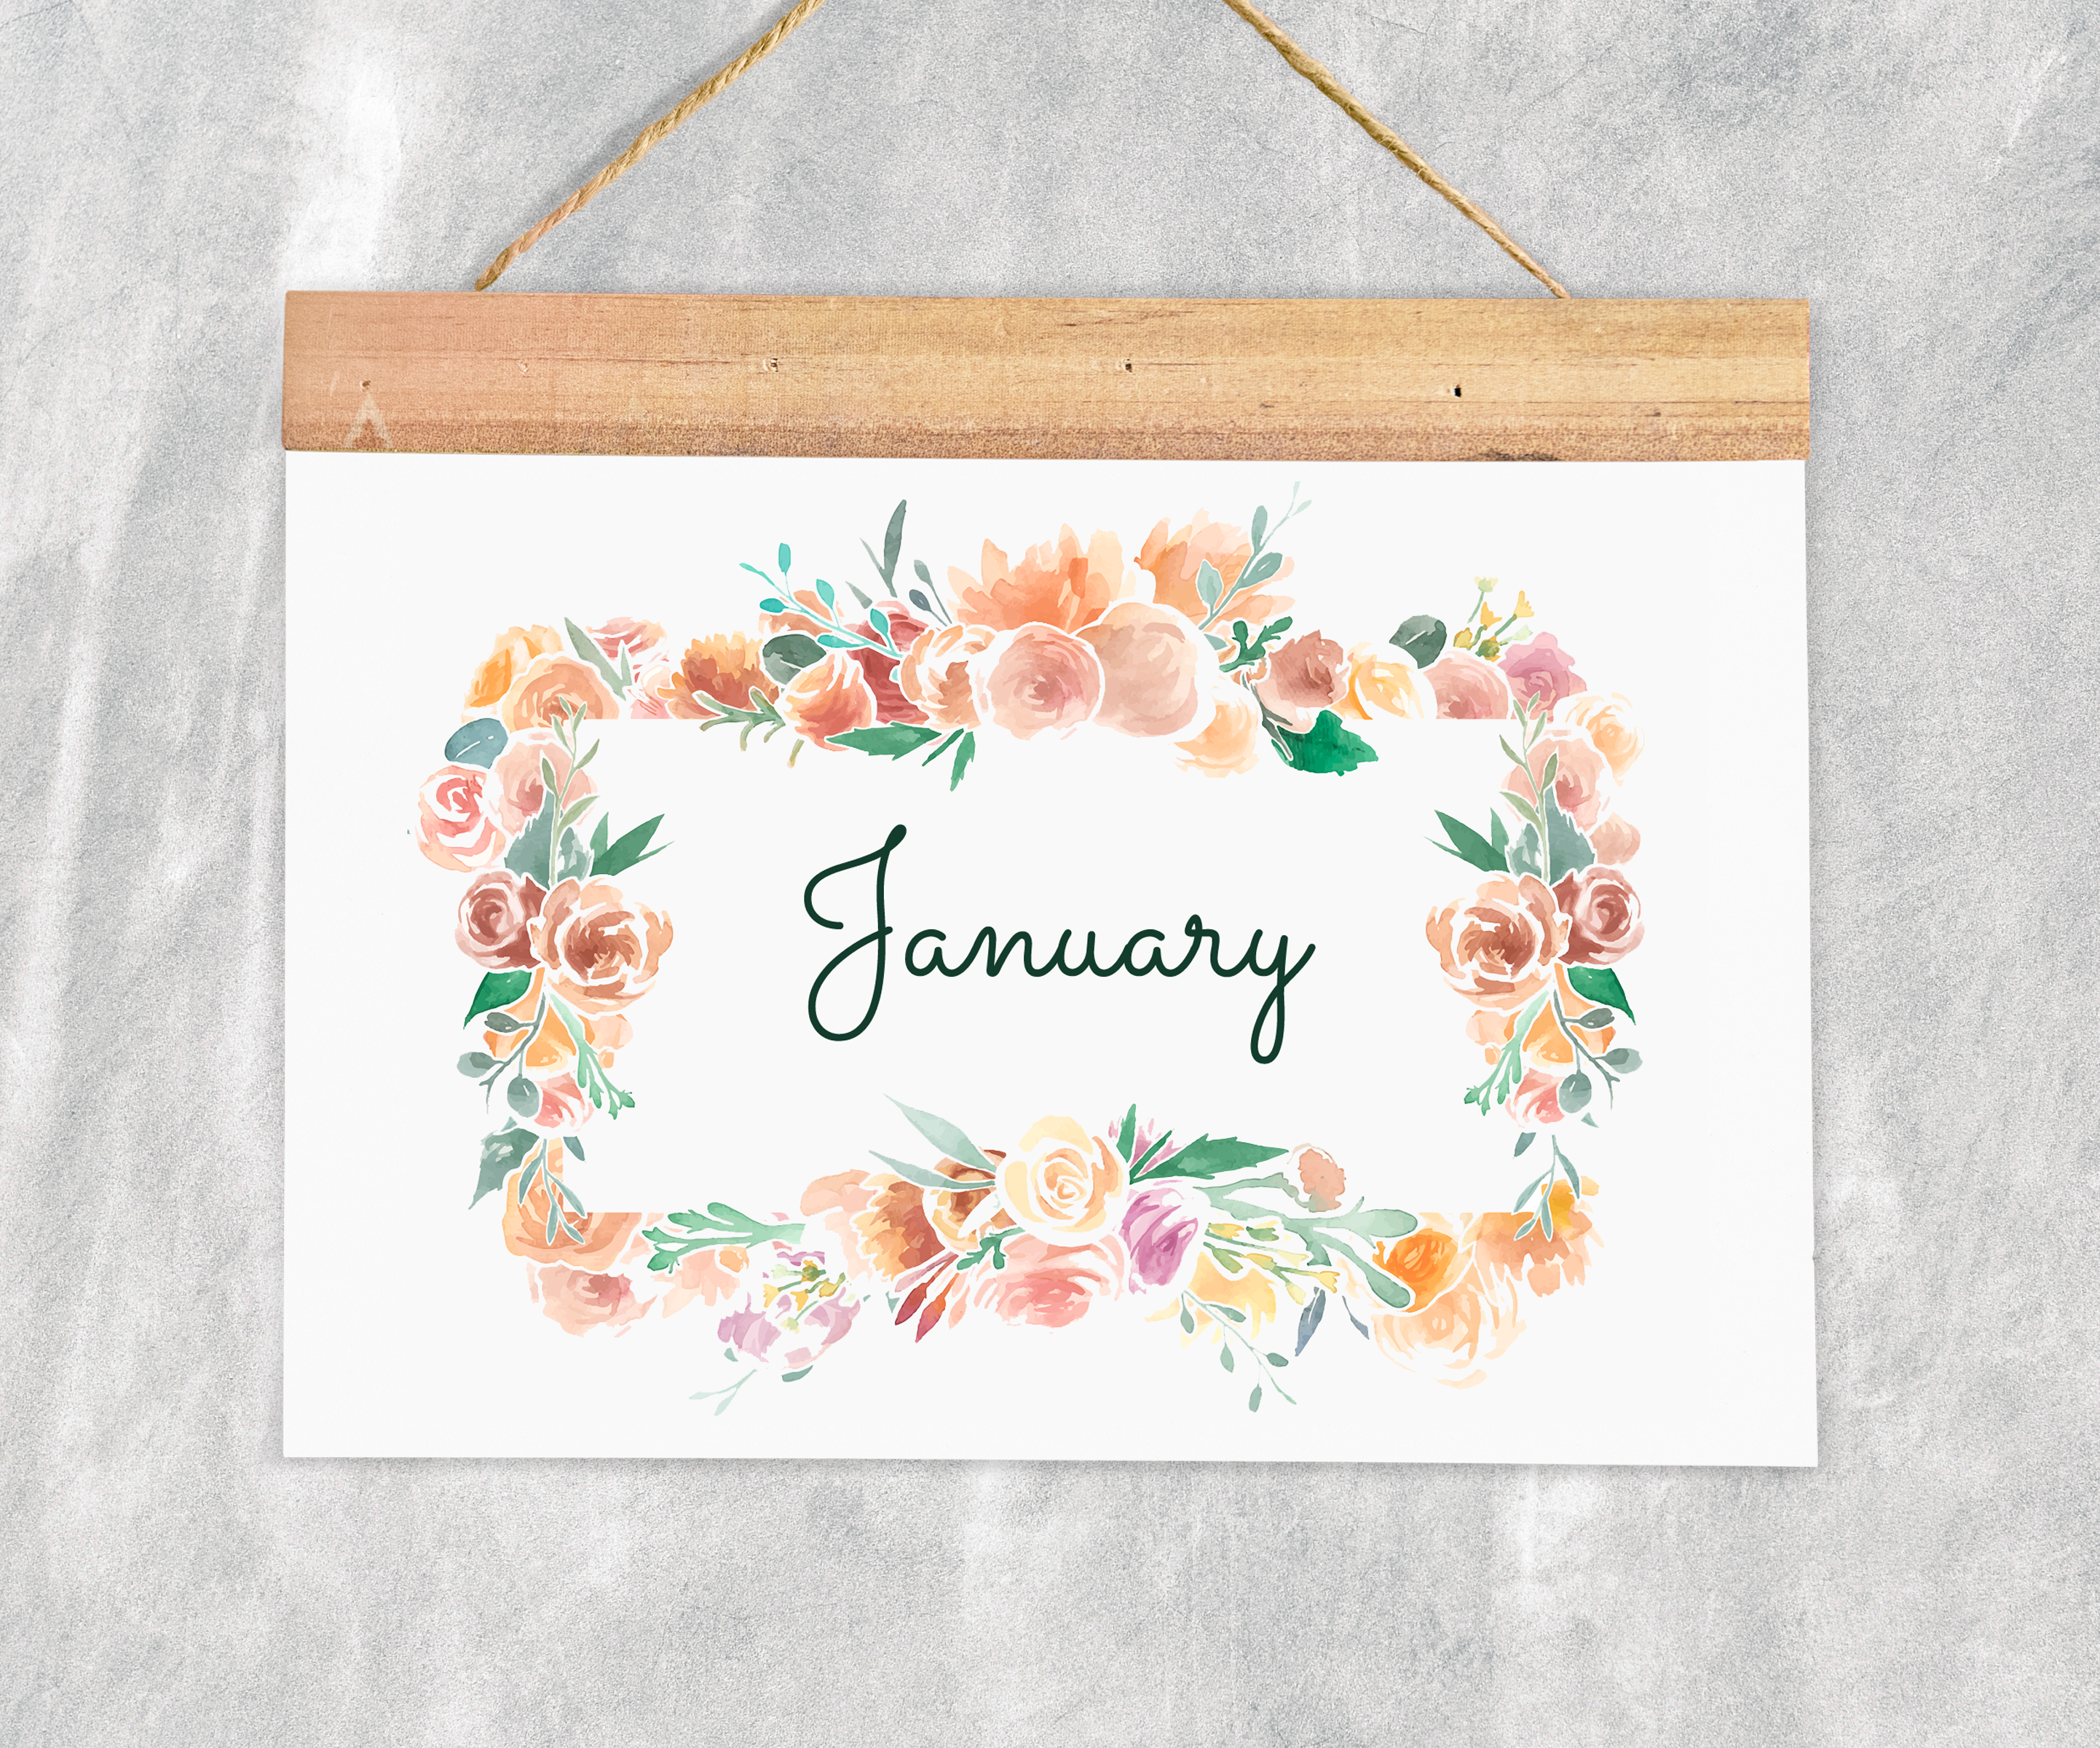 'January' written on hanging white board with floral border